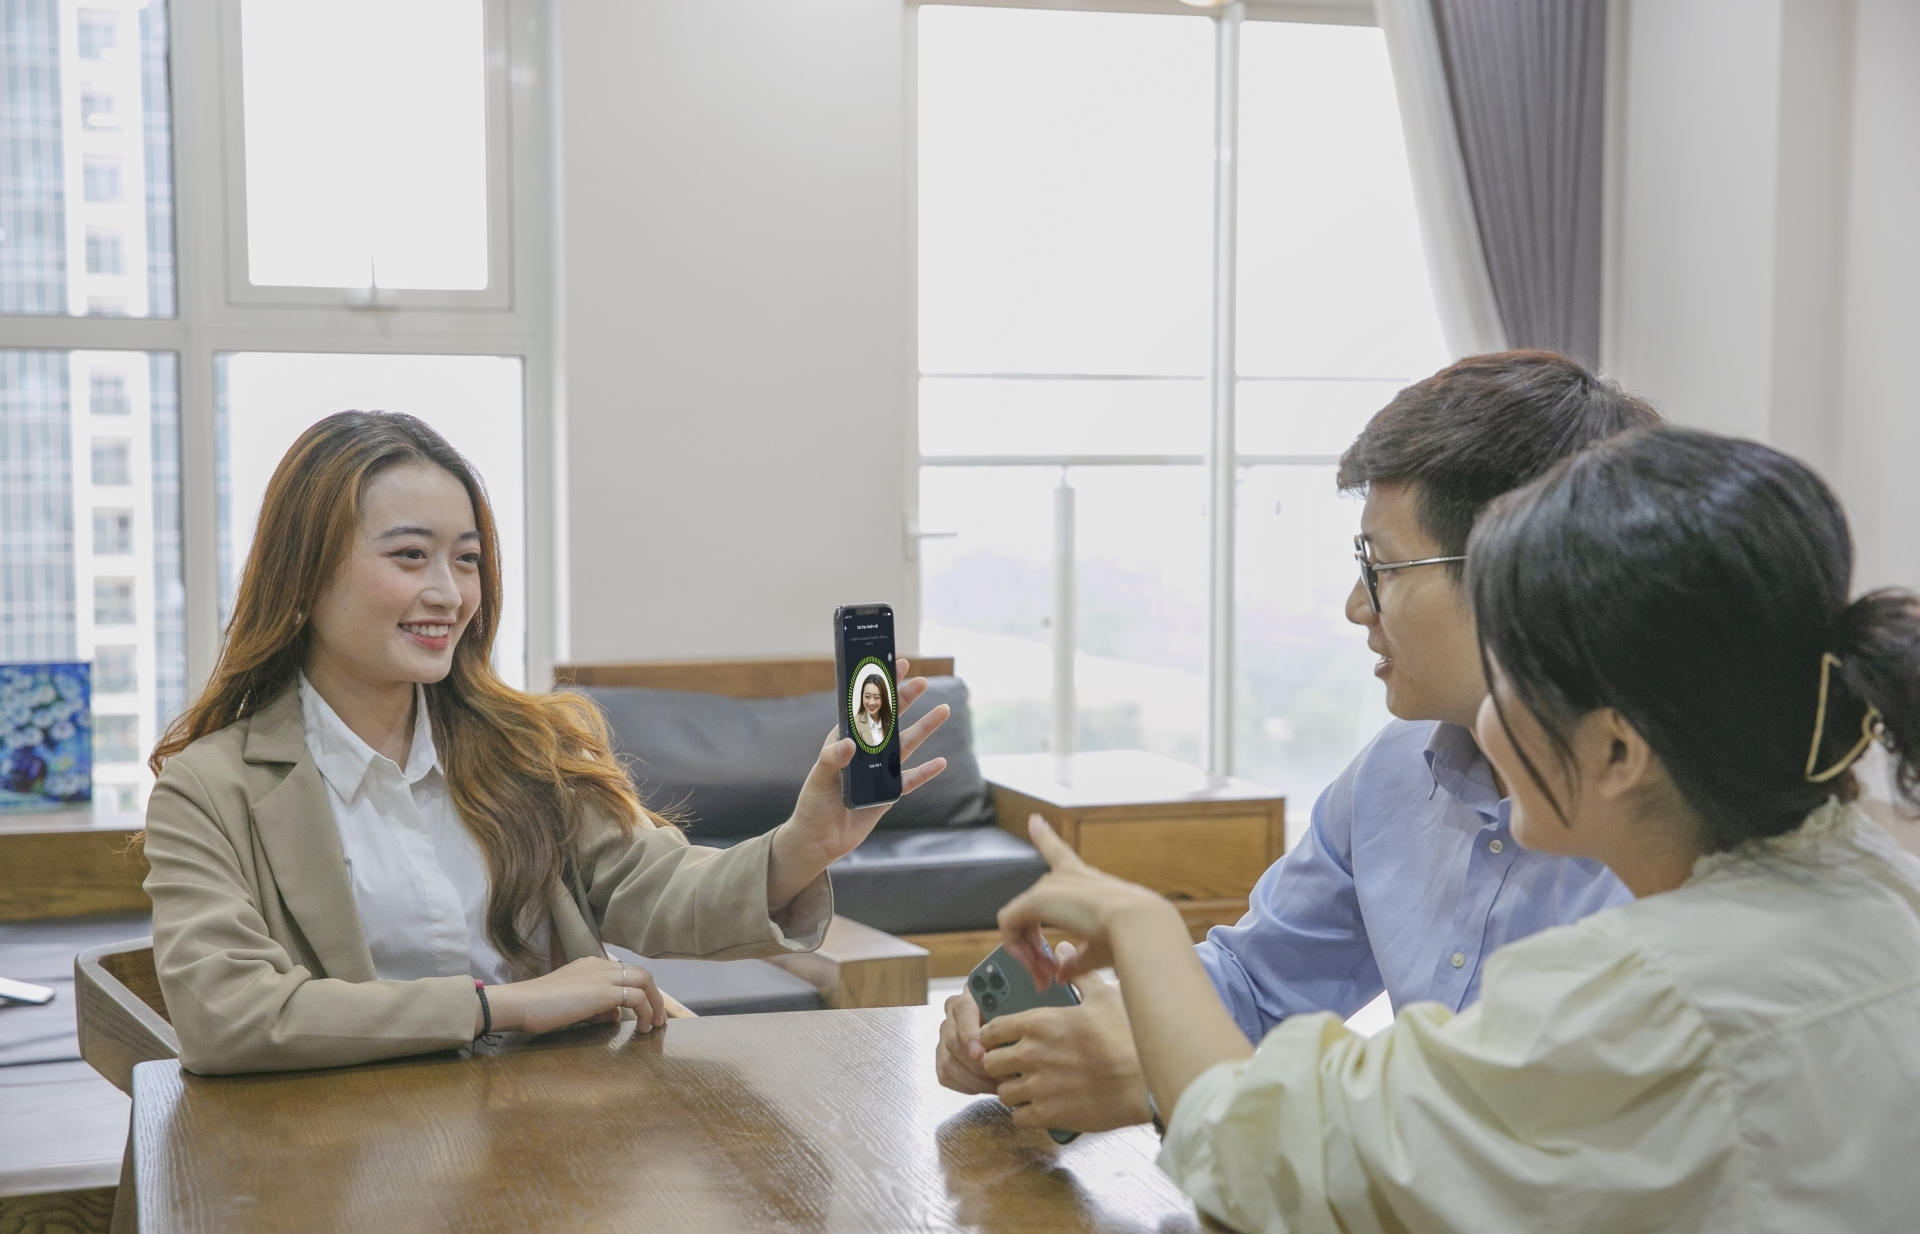 Vietcombank launches eKYC, allowing customers to open accounts anywhere within minutes